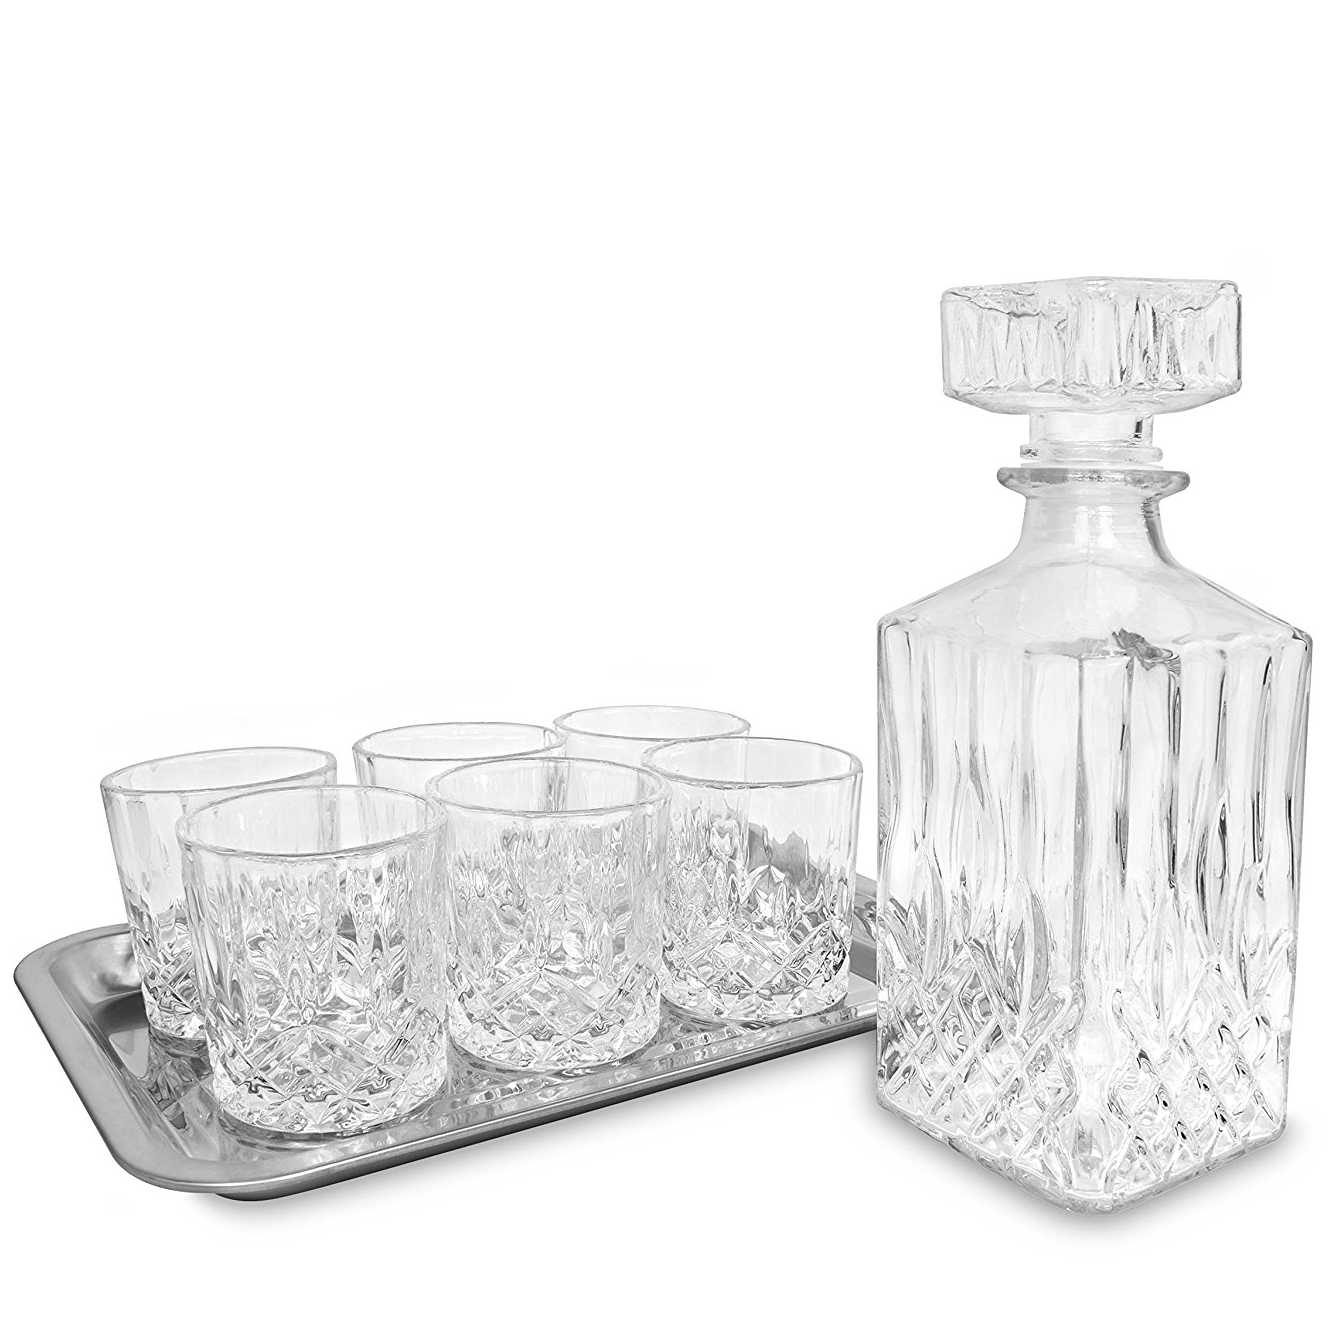 Whiskey Set 8 Piece Whiskey Bar Set